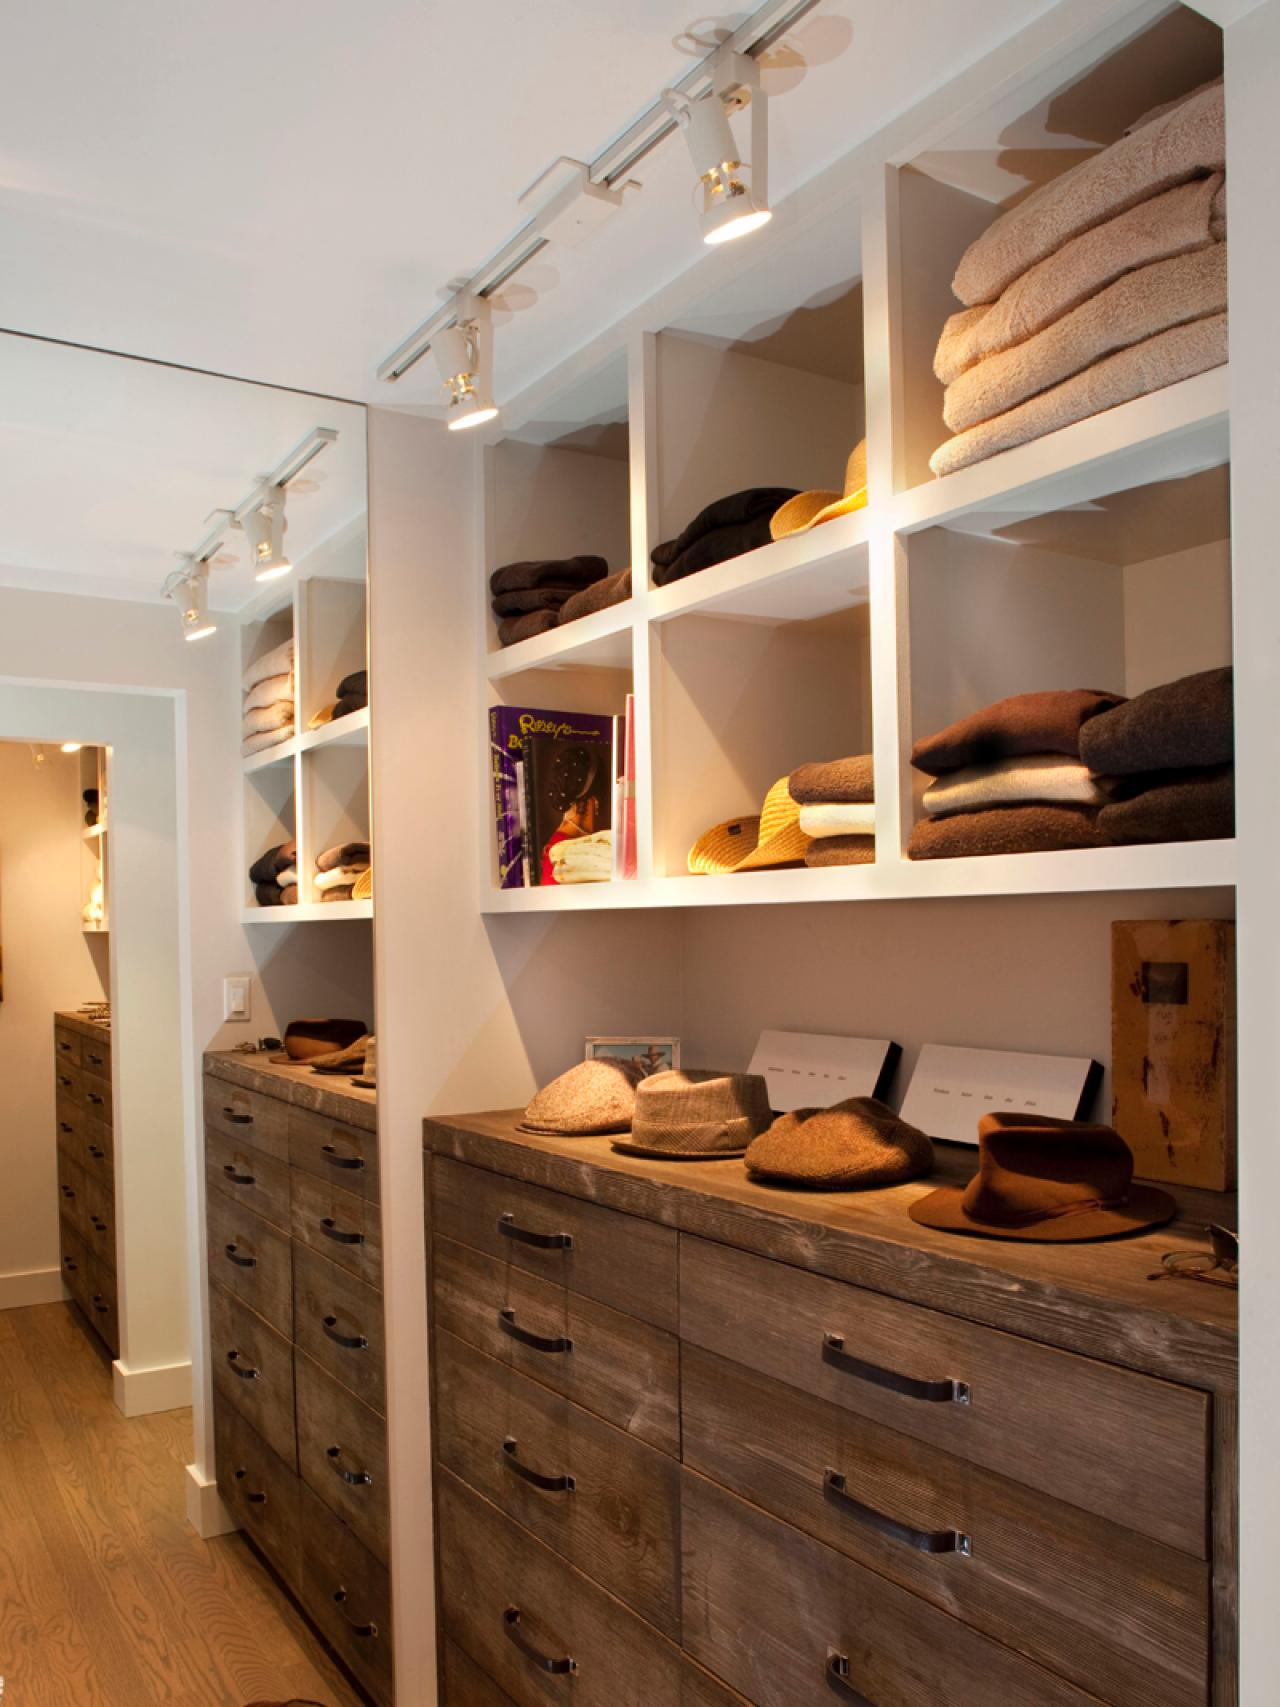 Nice Spotted Light Fixtures For Closet Space